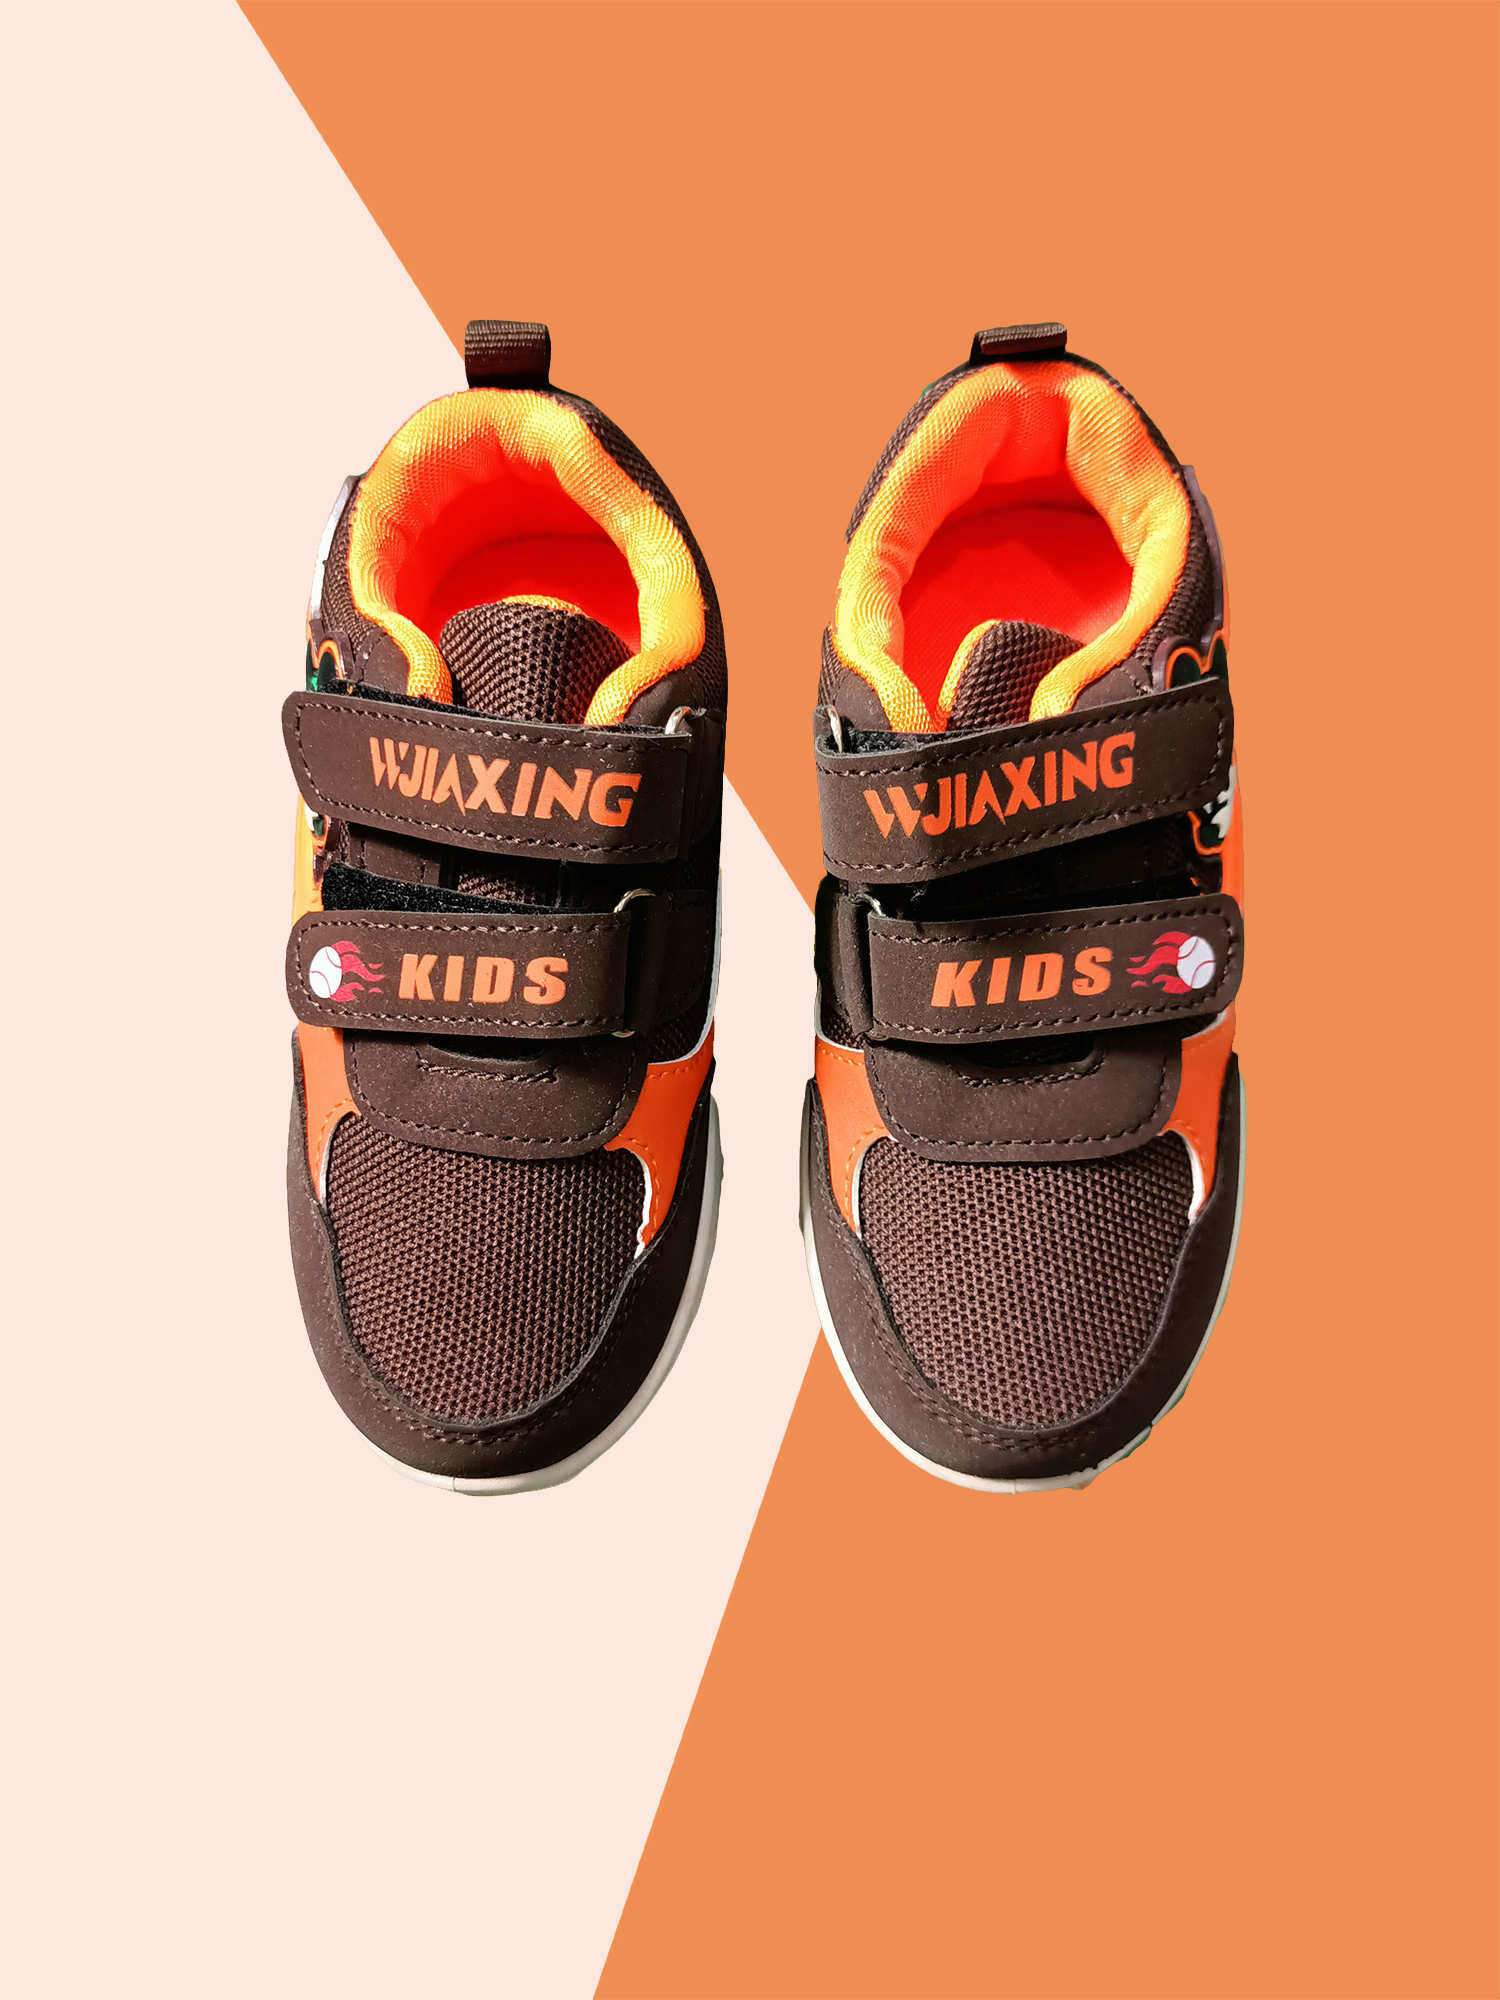 IMPORTED Stylish Kids Shoes with Light BROWN